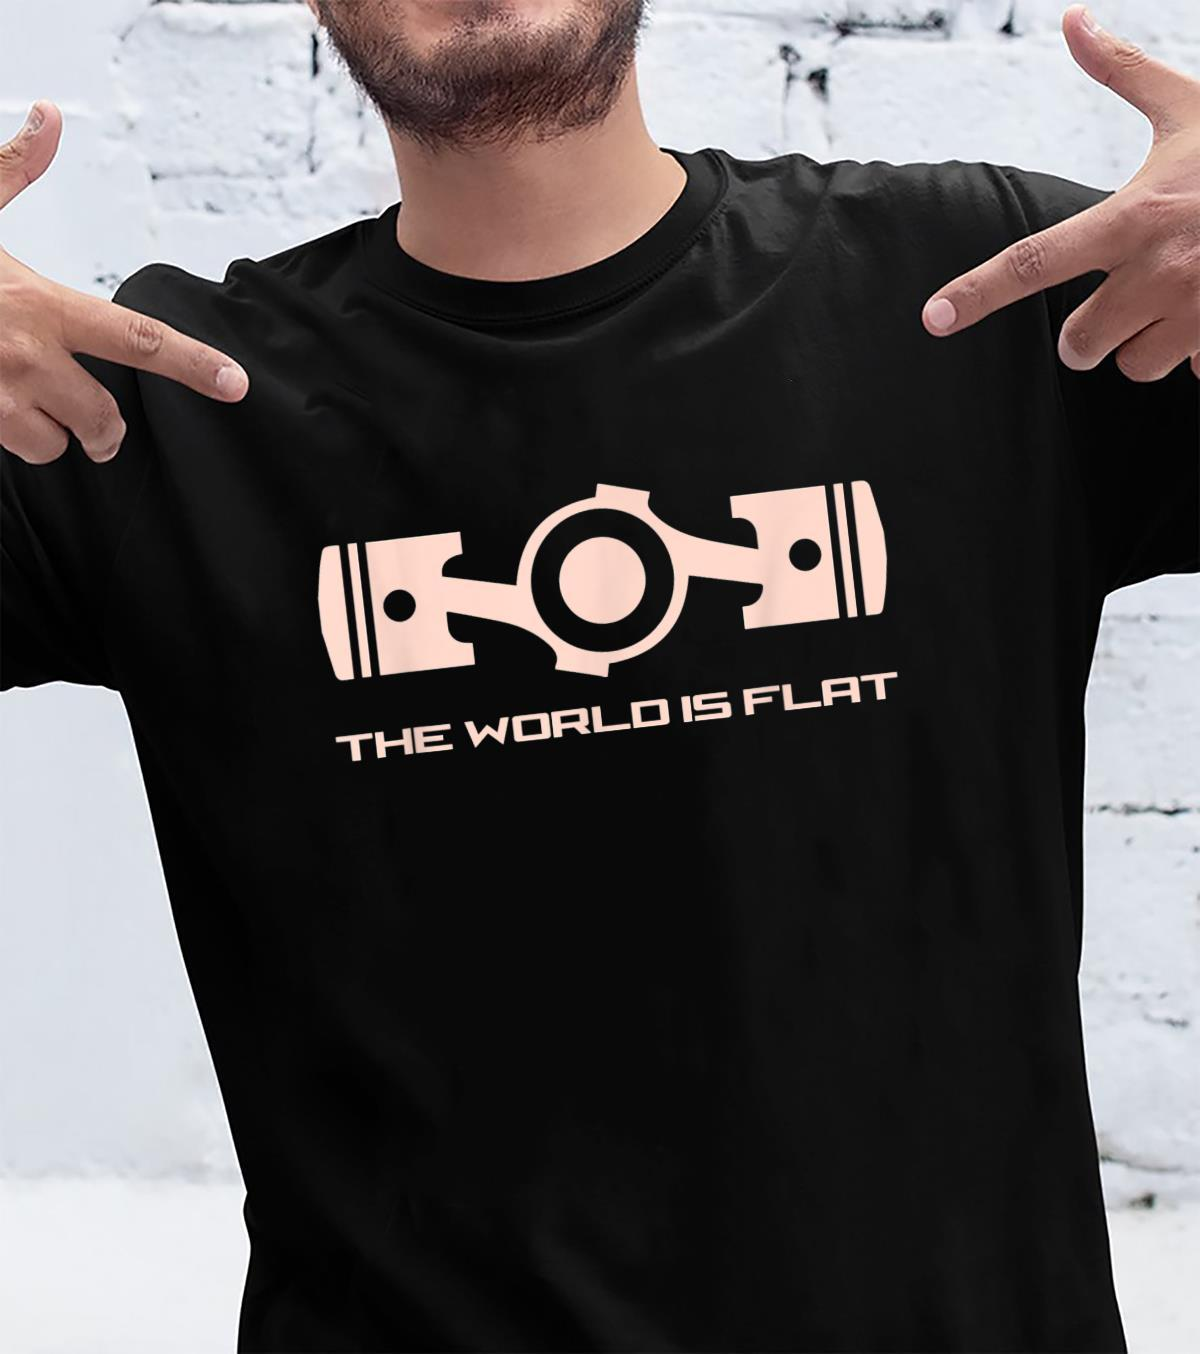 The World Is Flat Opposed Cylinder Engine Flat Earth Shirt